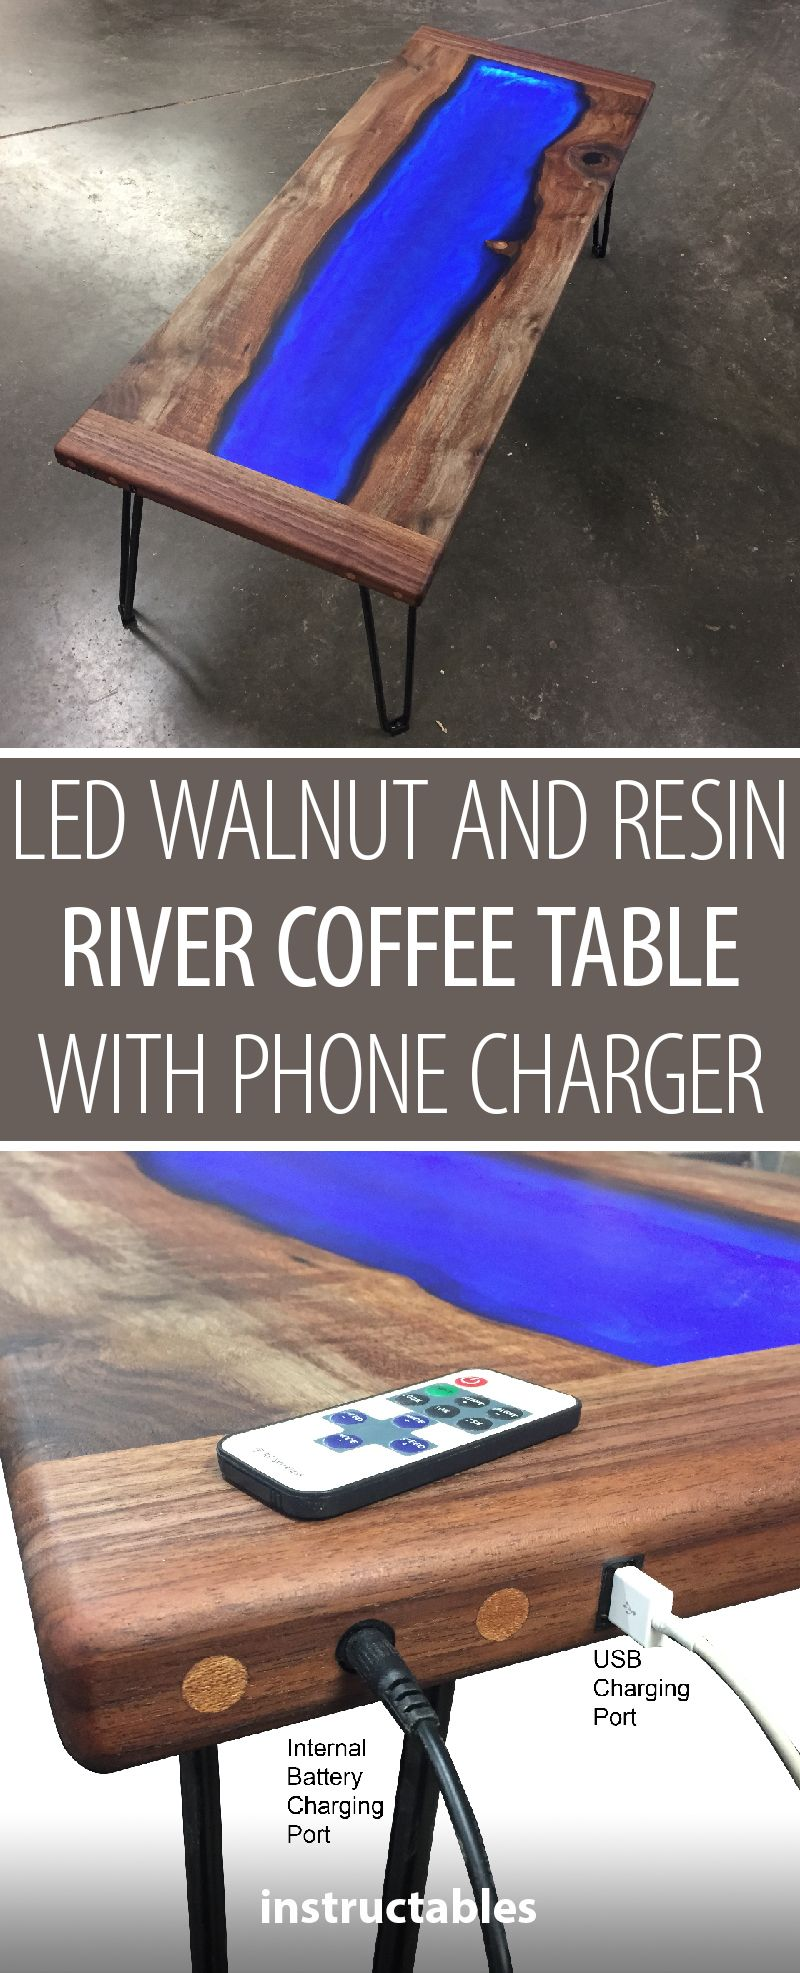 Led Lit Walnut And Resin River Coffee Table That Charges Your Phone